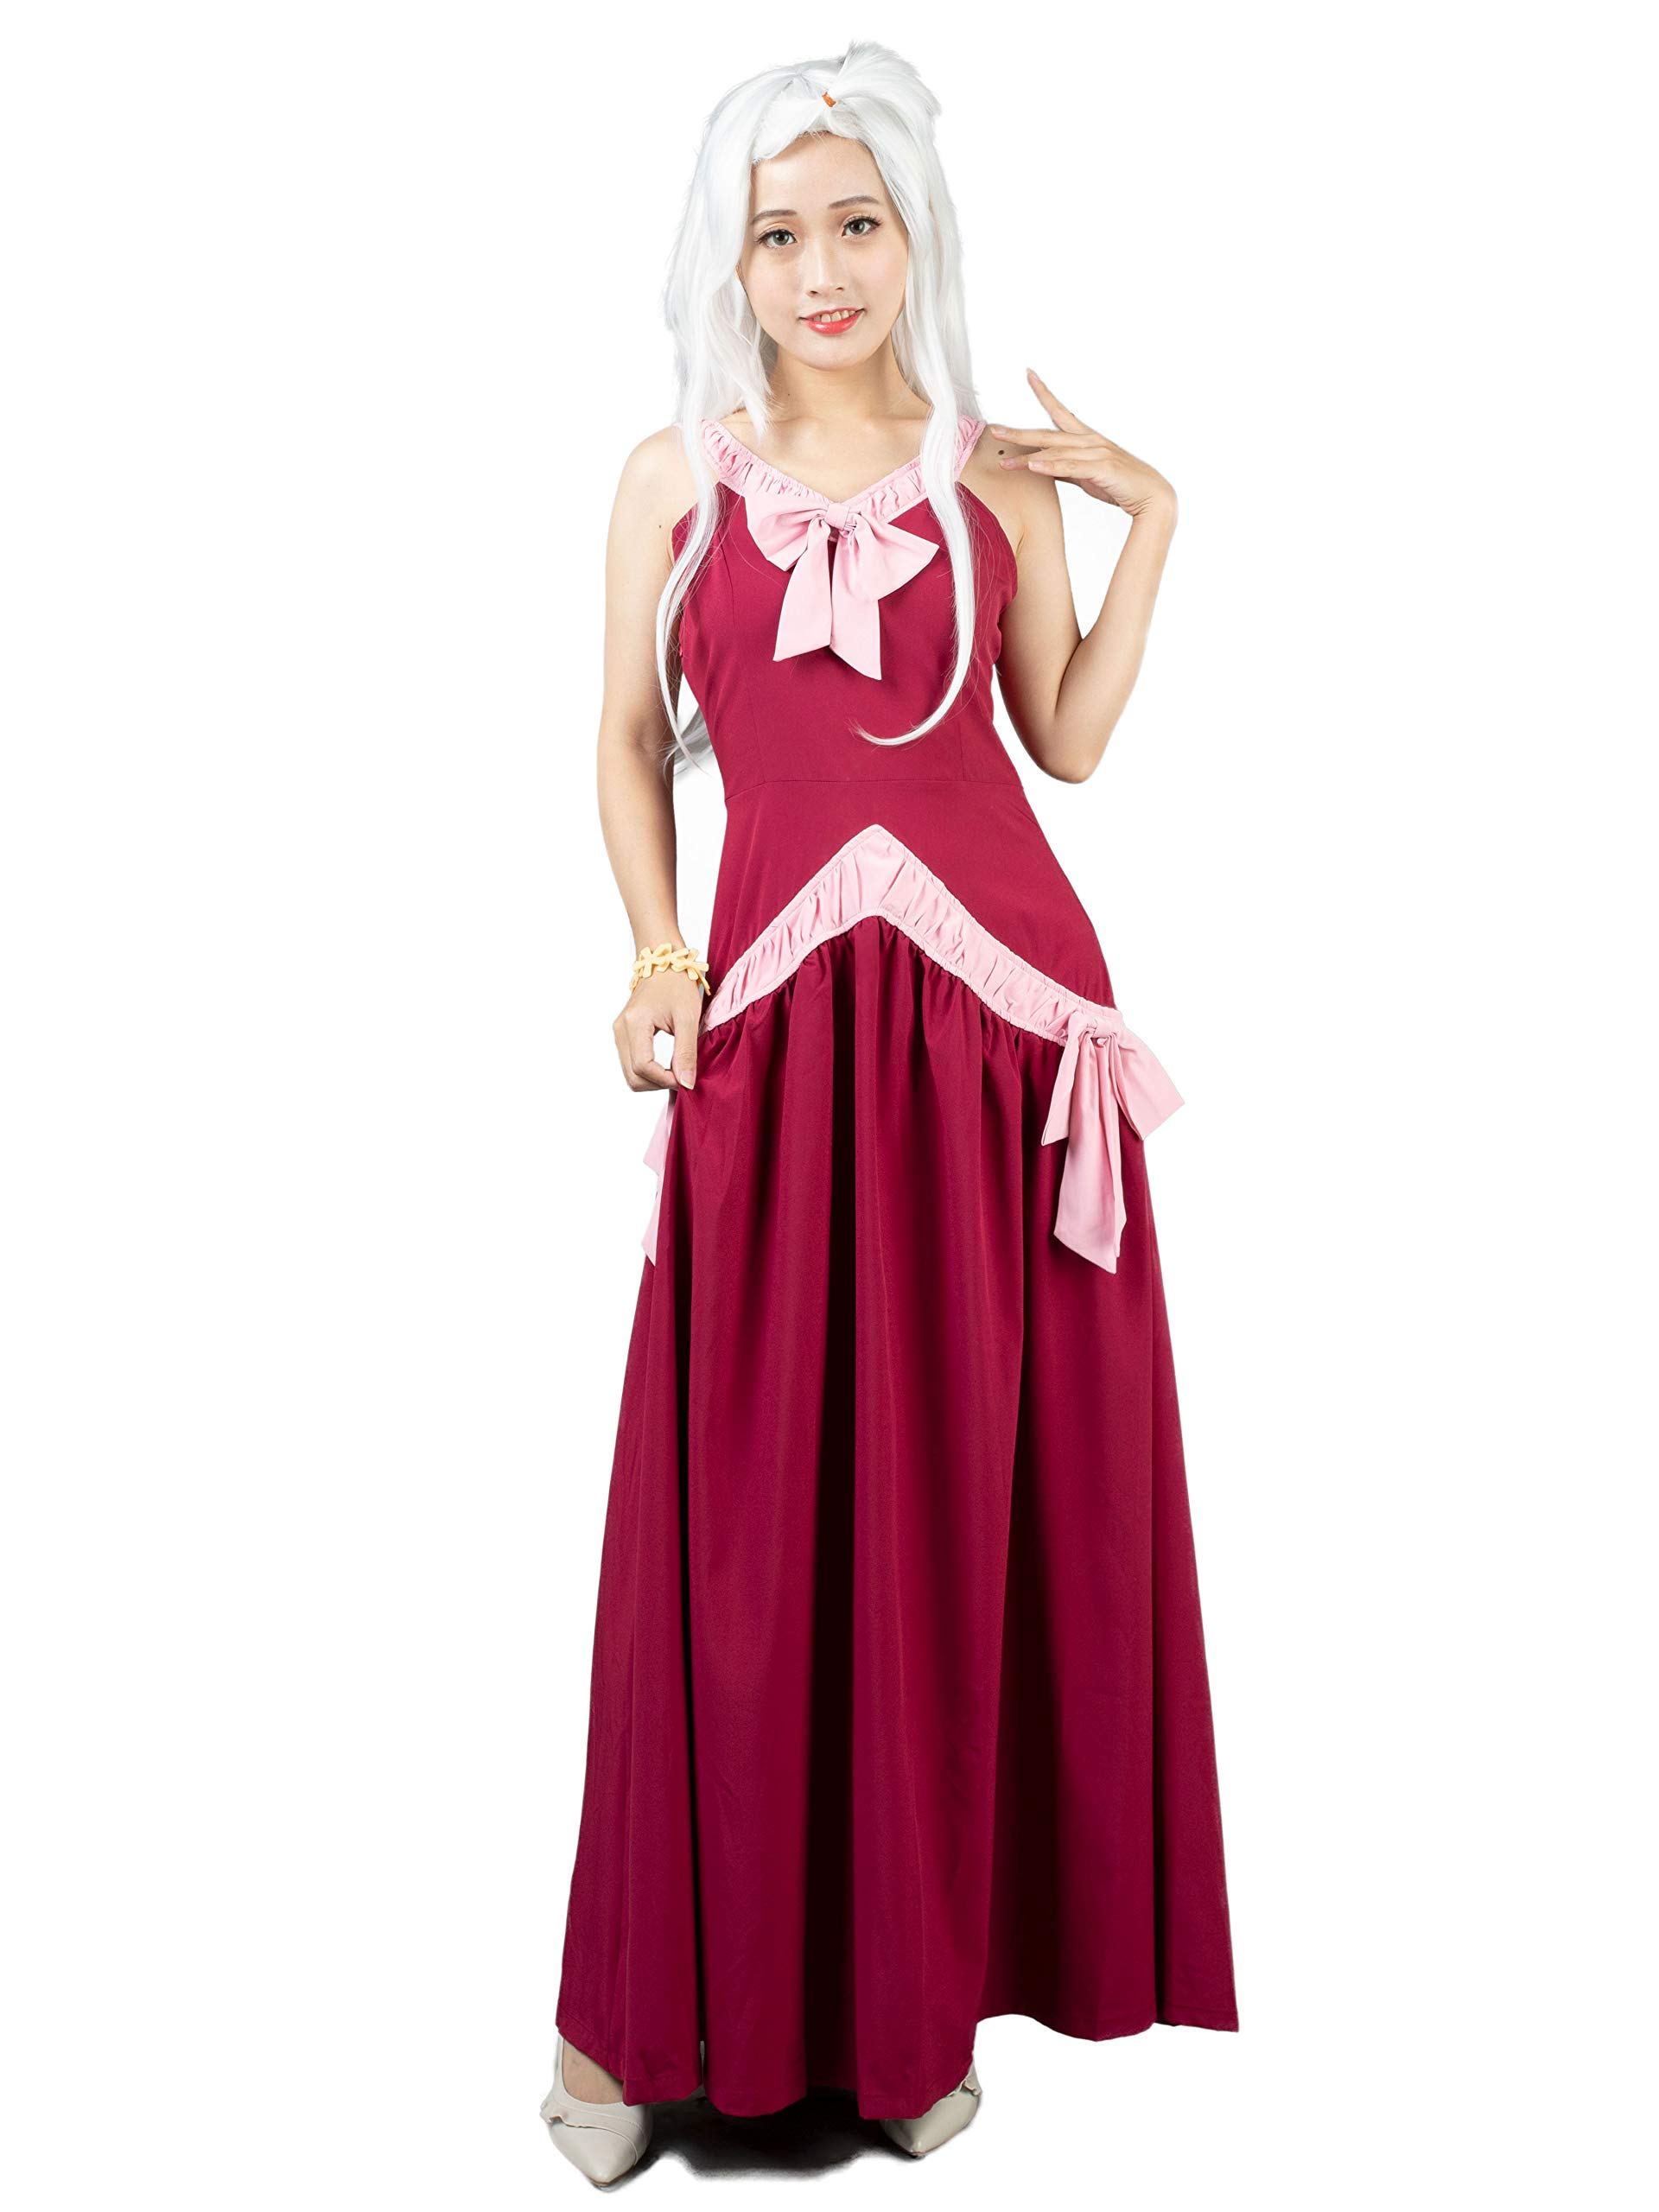 Cosfun Mirajane Strauss Cosplay Costume Red Dress Mp003146 Mirajane is a skilled user in take over magic and share her power with her siblings when they were little, making them the take over siblings. yoybuy